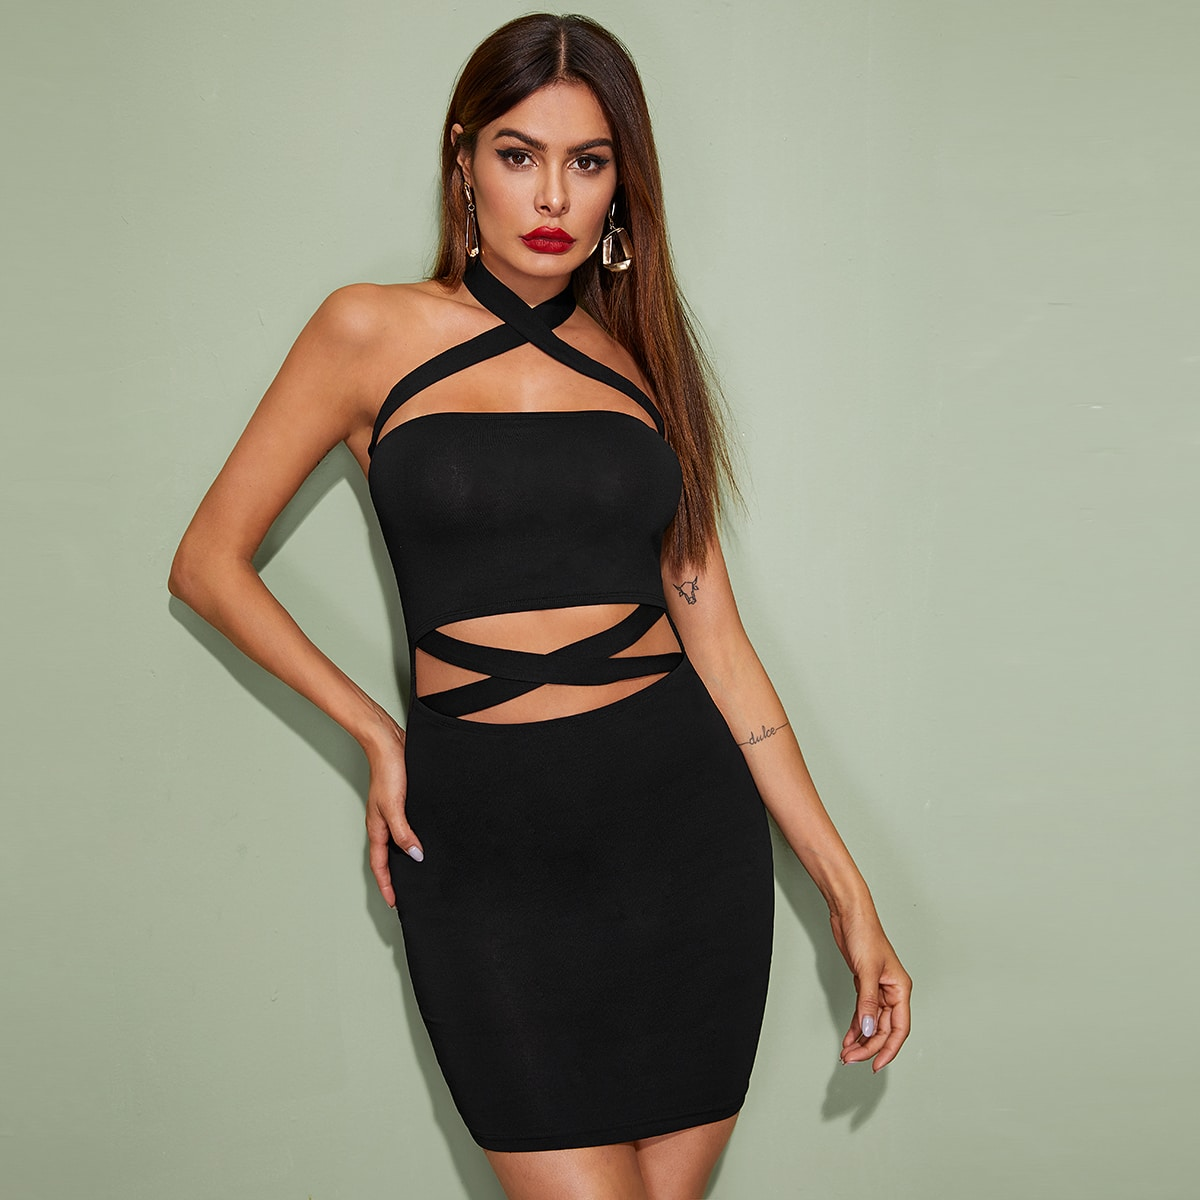 Solid Crisscross Front Bodycon Halter Dress, SHEIN  - buy with discount